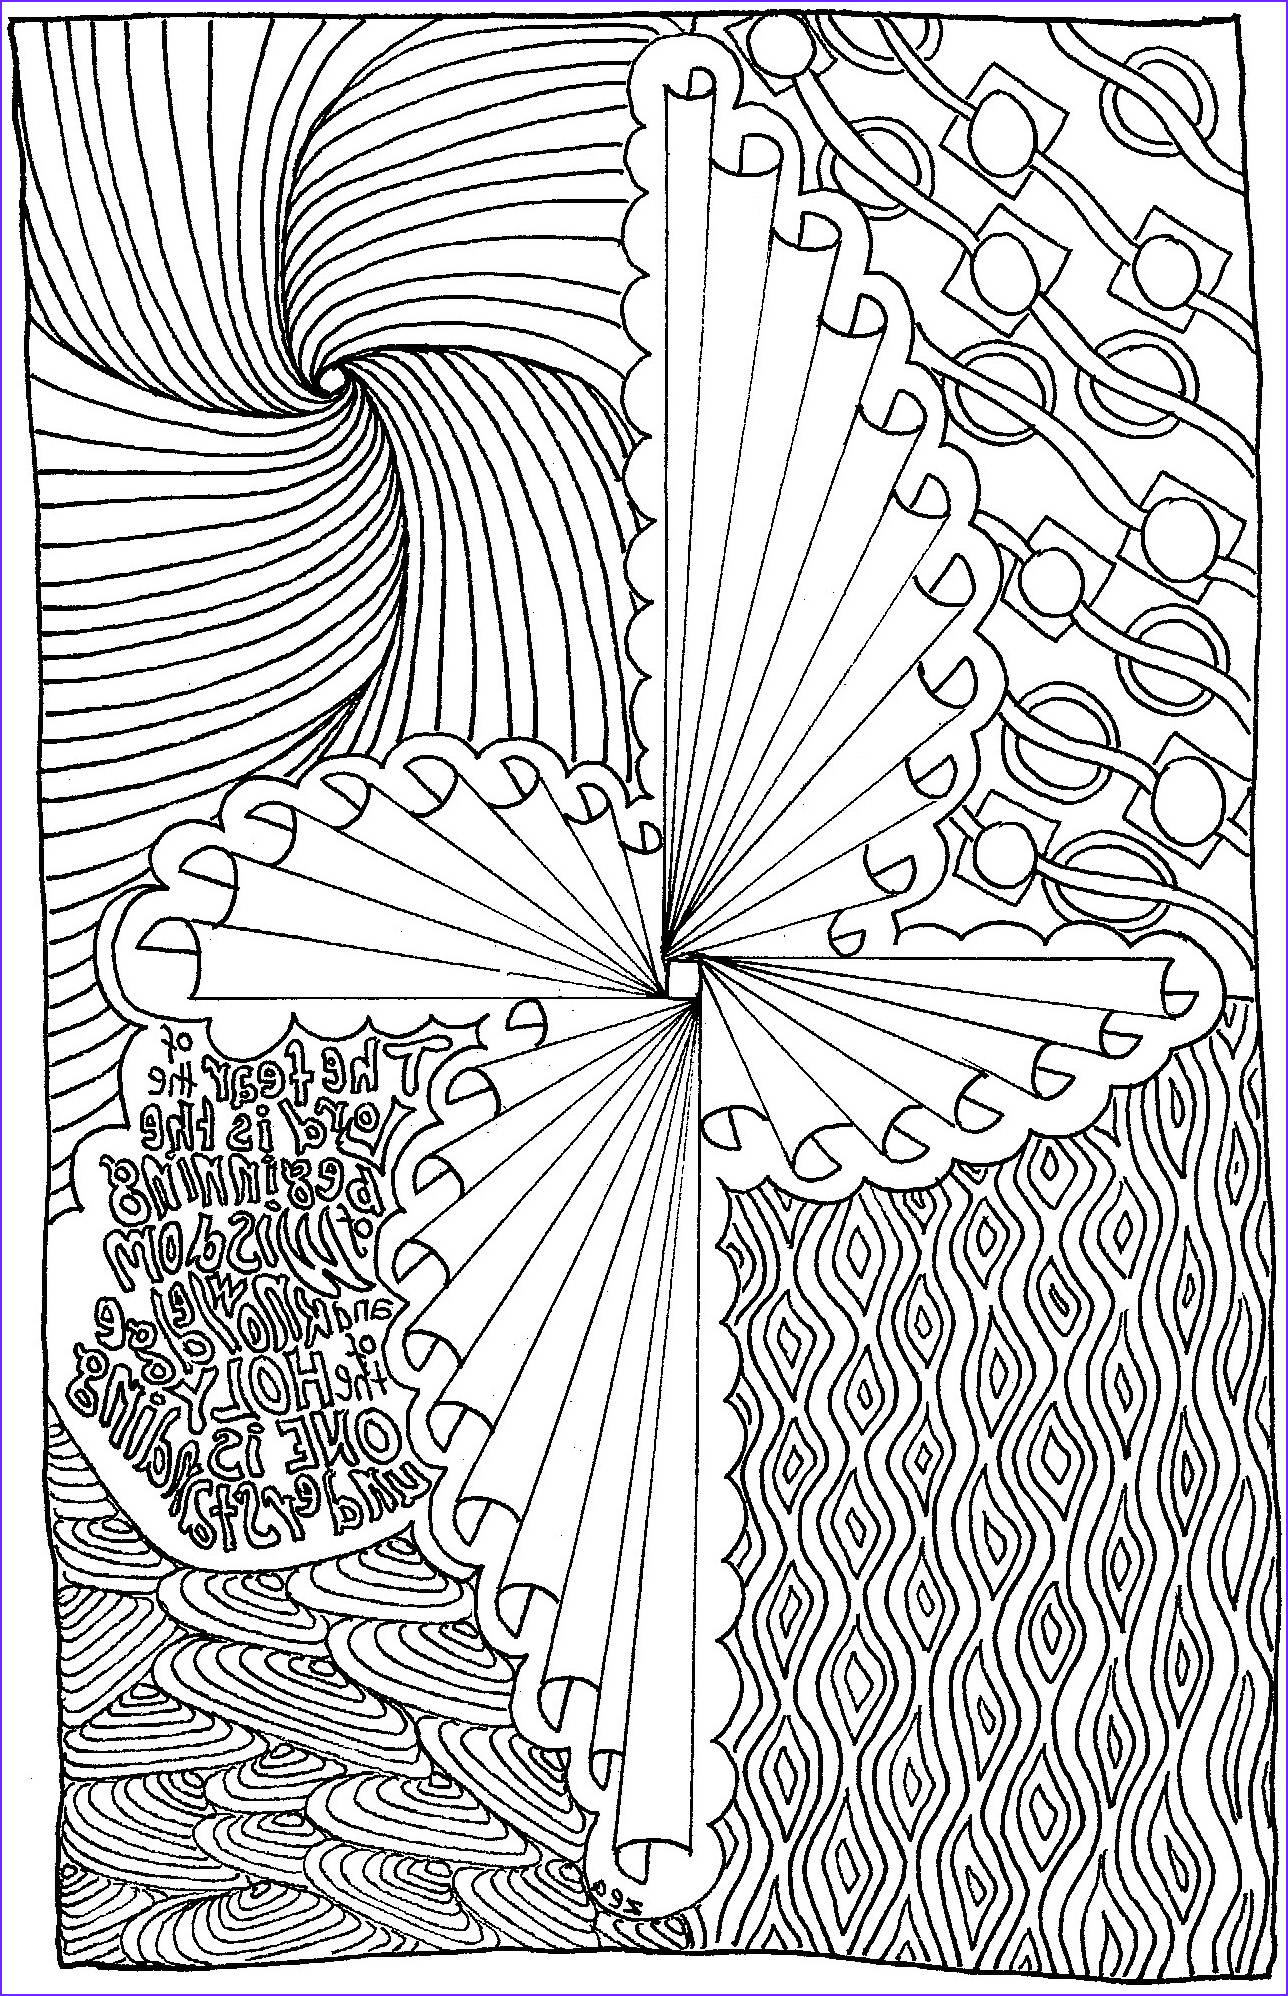 able colouring in book